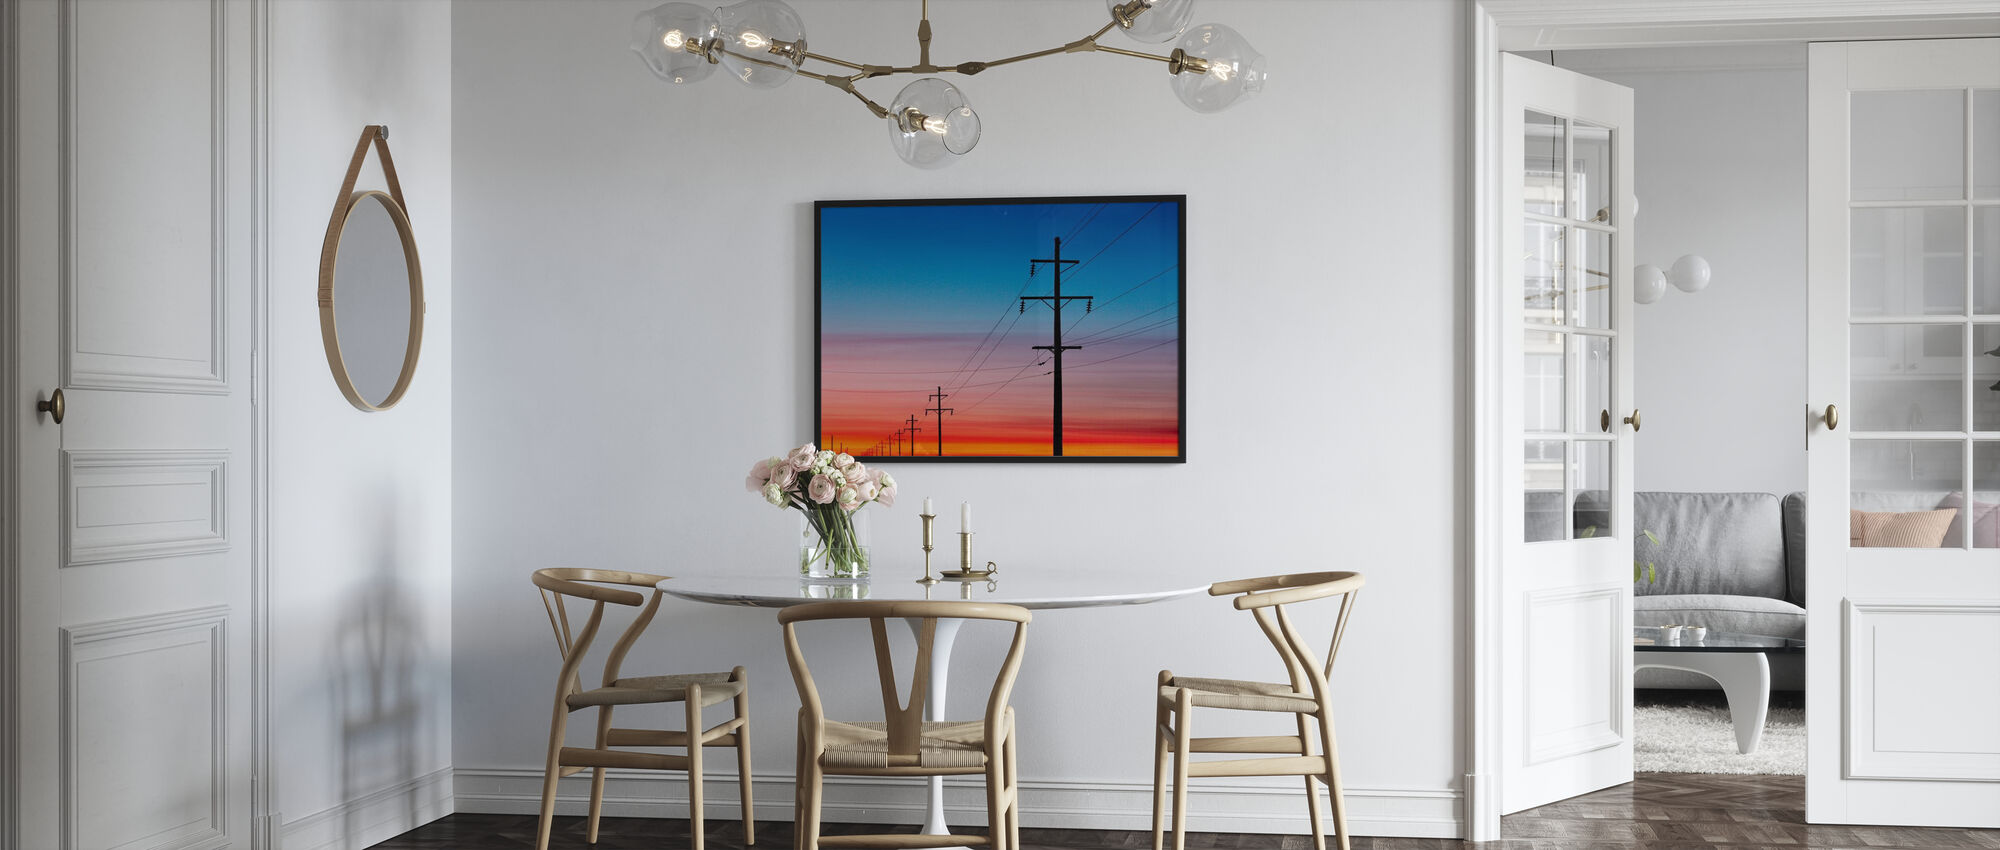 Power Lines at Sunset - Poster - Kitchen